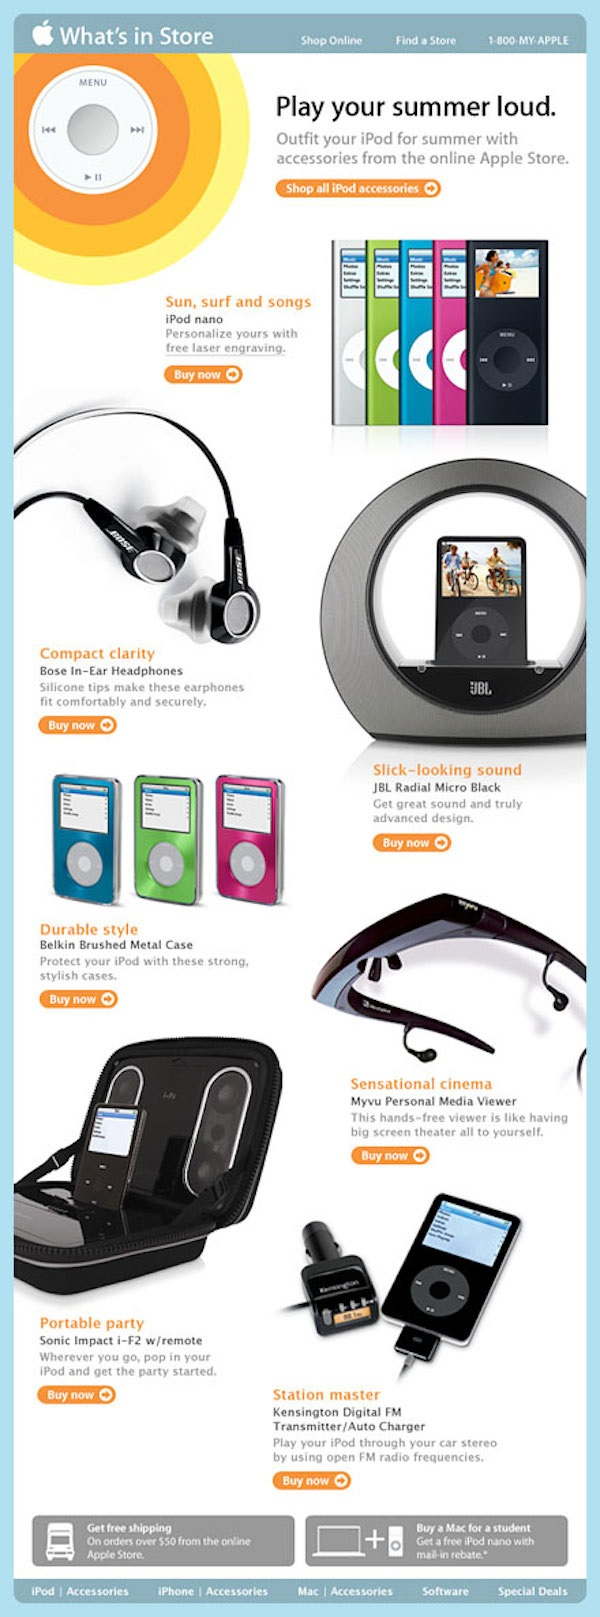 Apple iPod Summer Accessories Mail